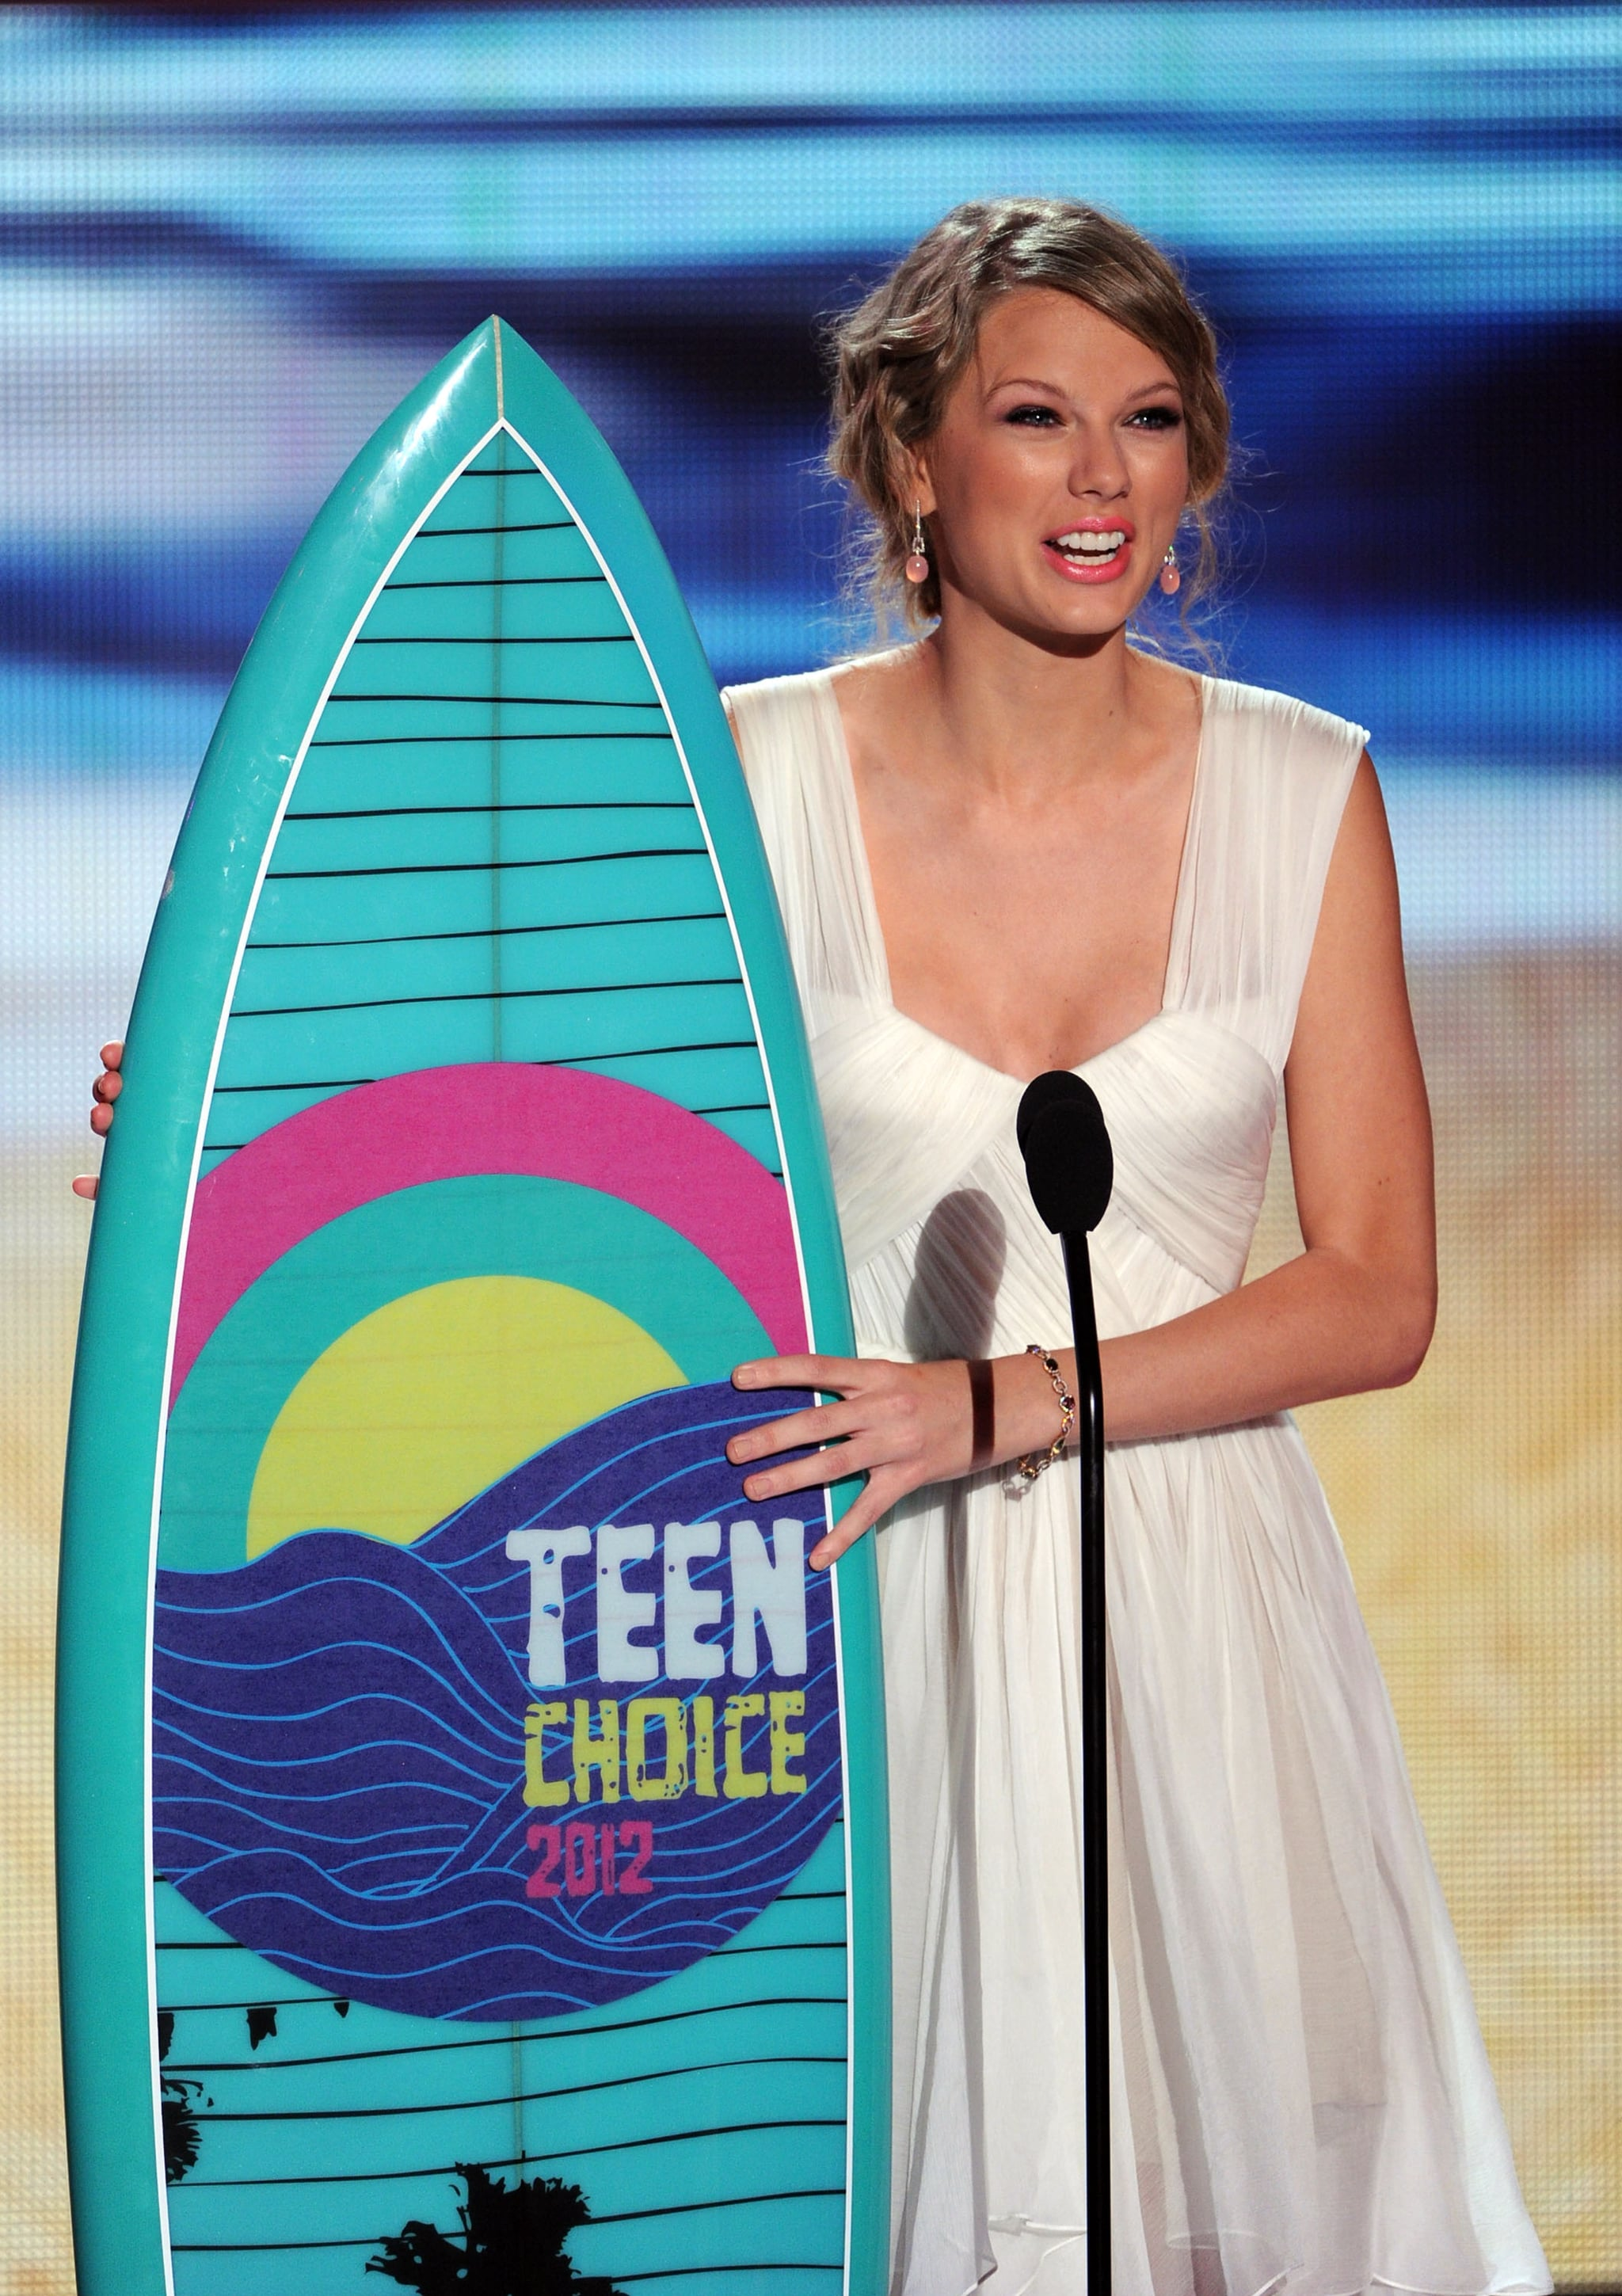 She accepted her Choice Female Artist award at the Teen Choice Awards in August 2011.